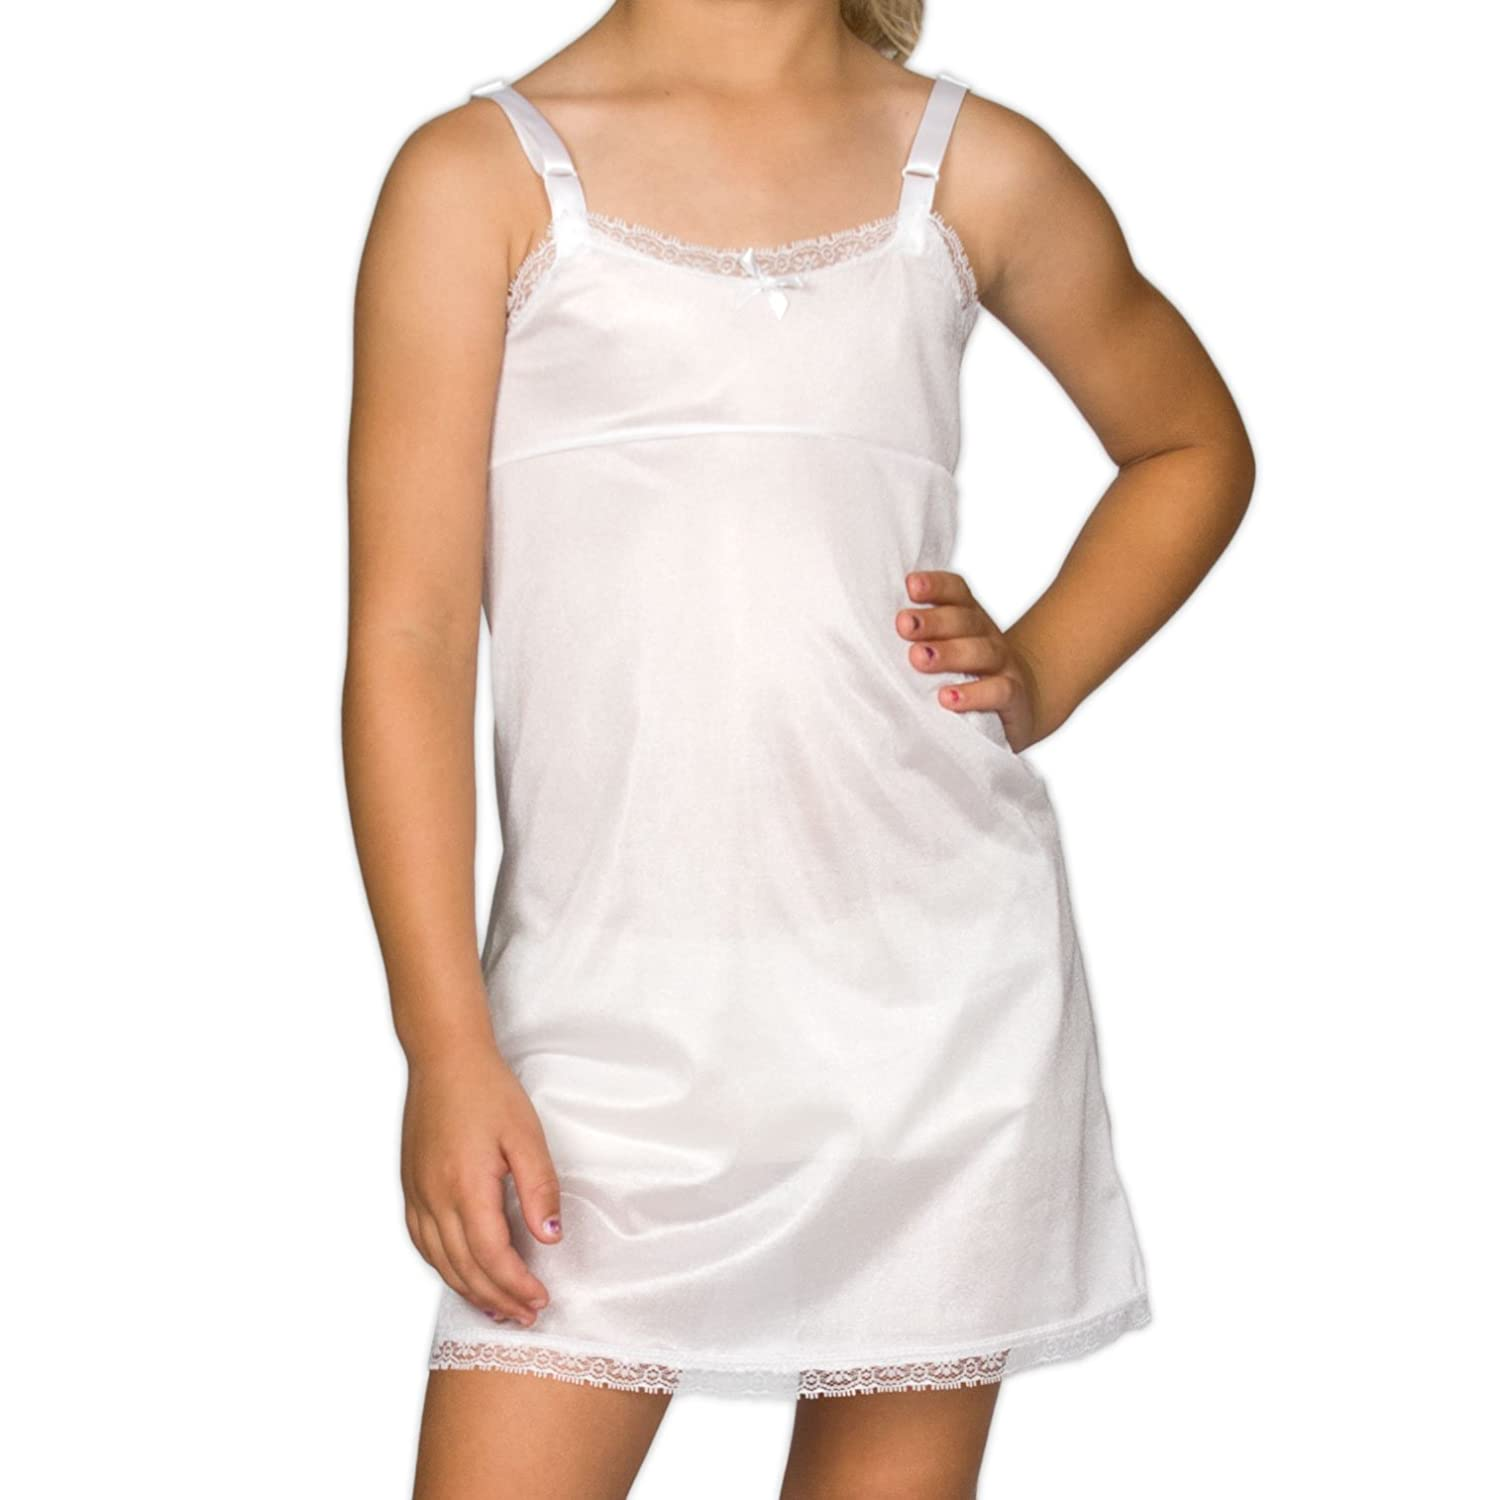 I.C. Collections Big Girls White Simple Empire Waist Slip, 8 New ICM 000419-WHC